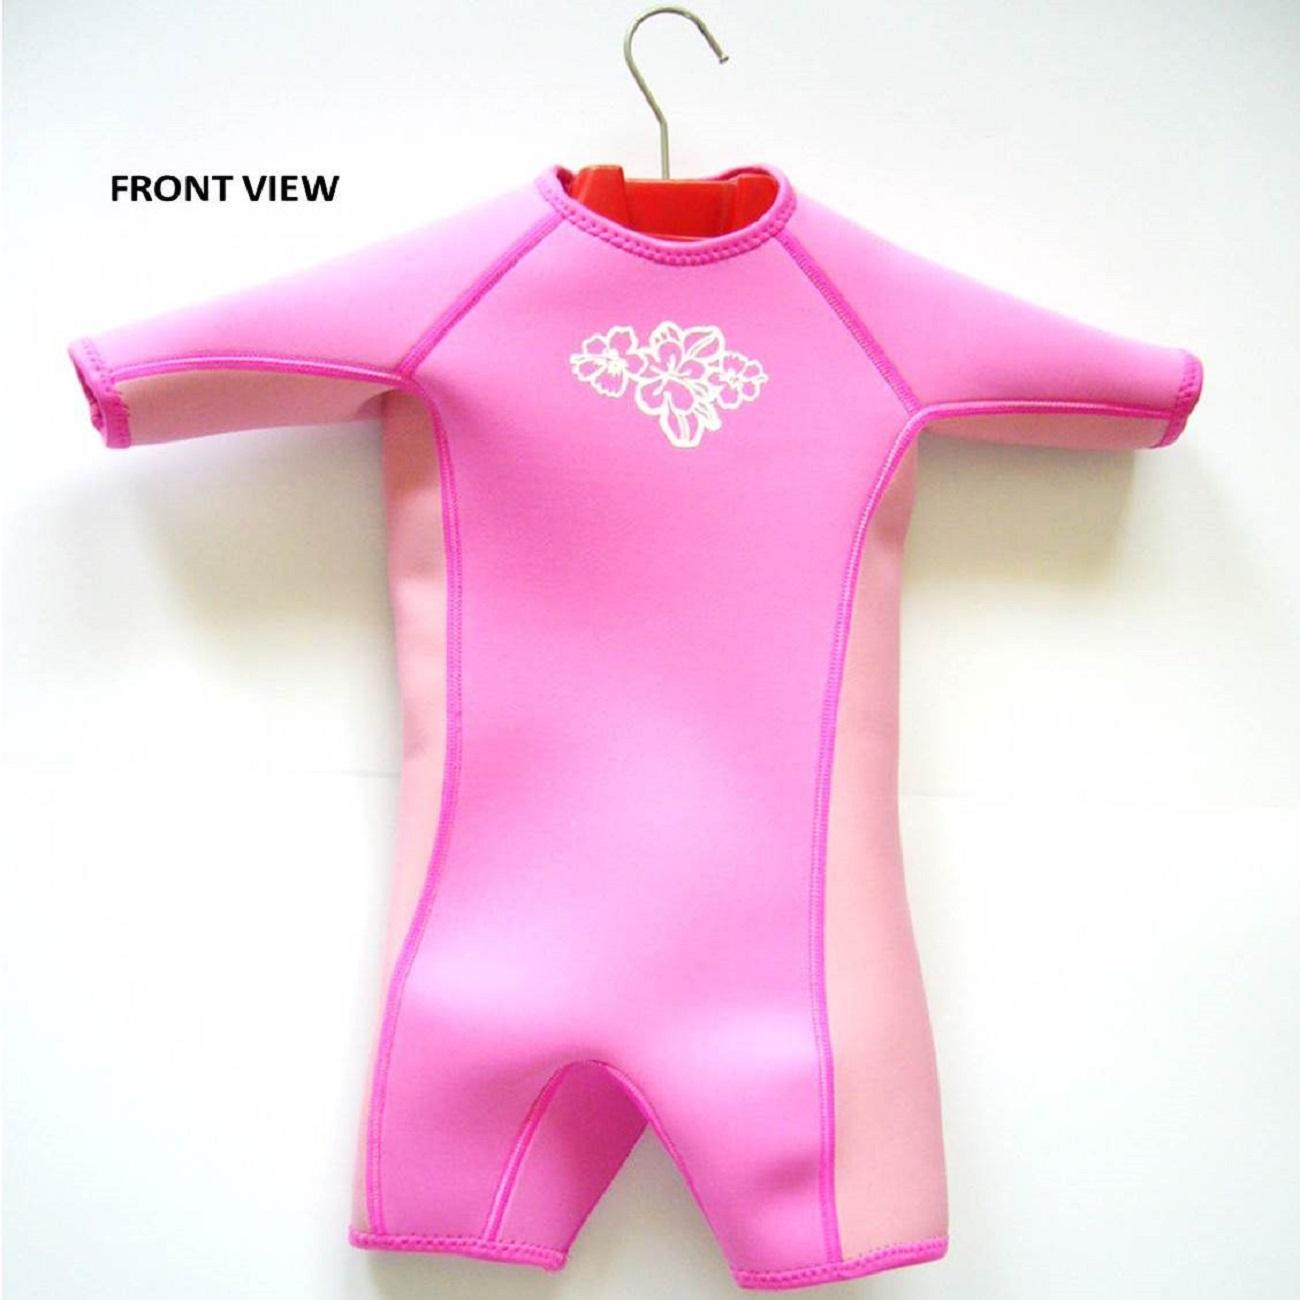 8180d91340 b20c87bb7cec6ac81beb6130e6383062 Invite Boys and Girls Thermal Swimwear / swim  suit Kids/ Children and Baby swim